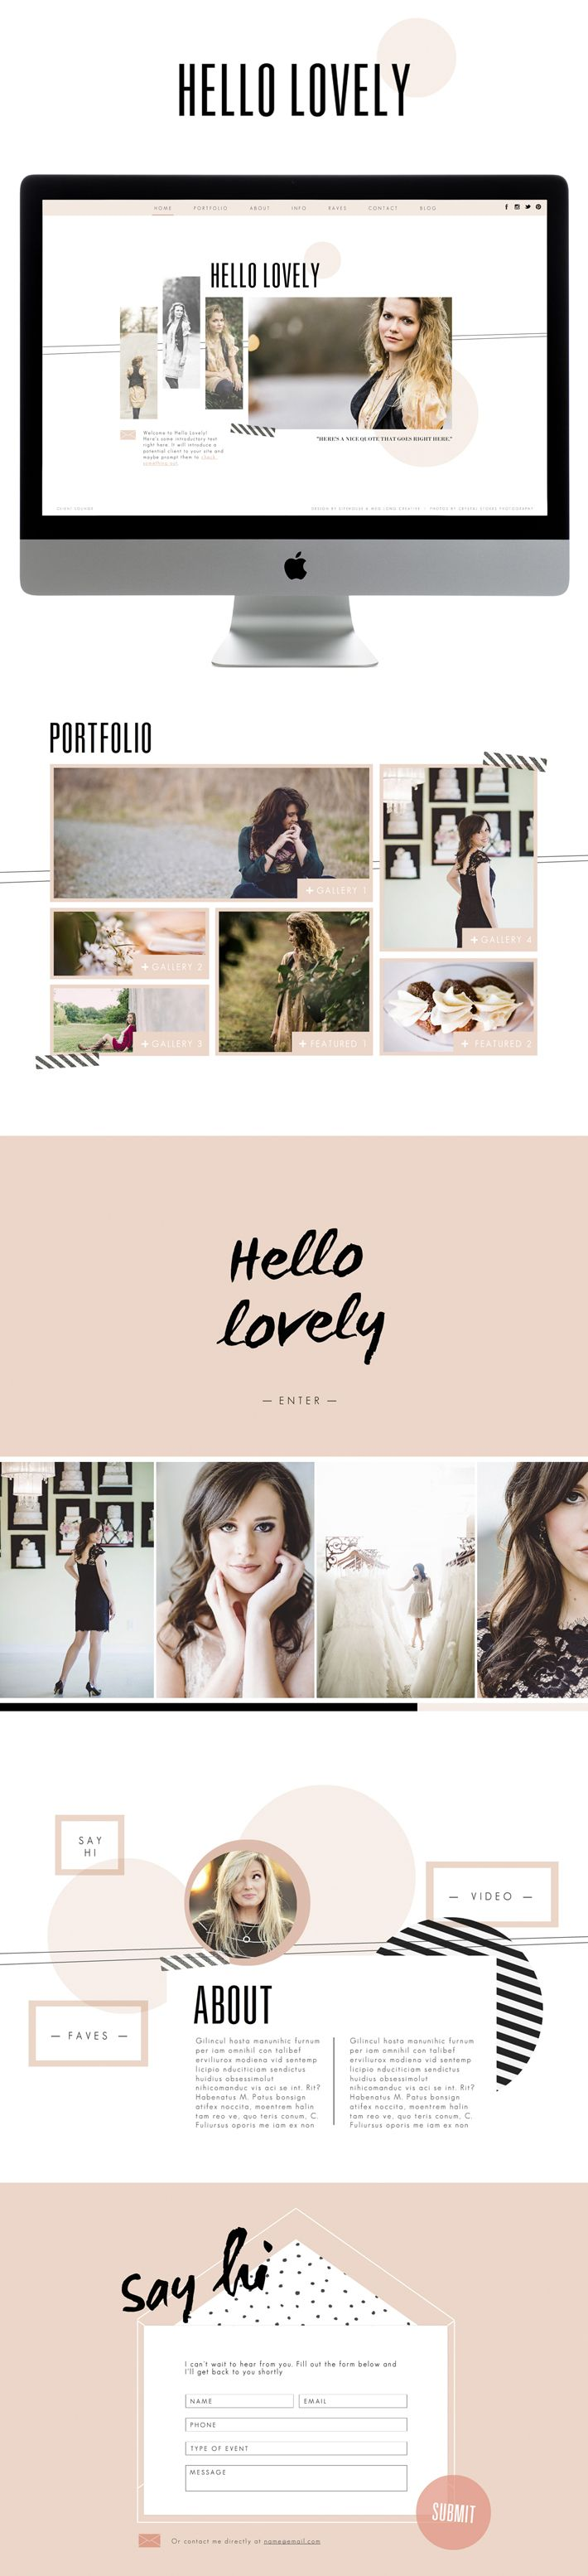 Hello Lovely - Designed by Meg Long for SiteHouse by Promise Tangeman